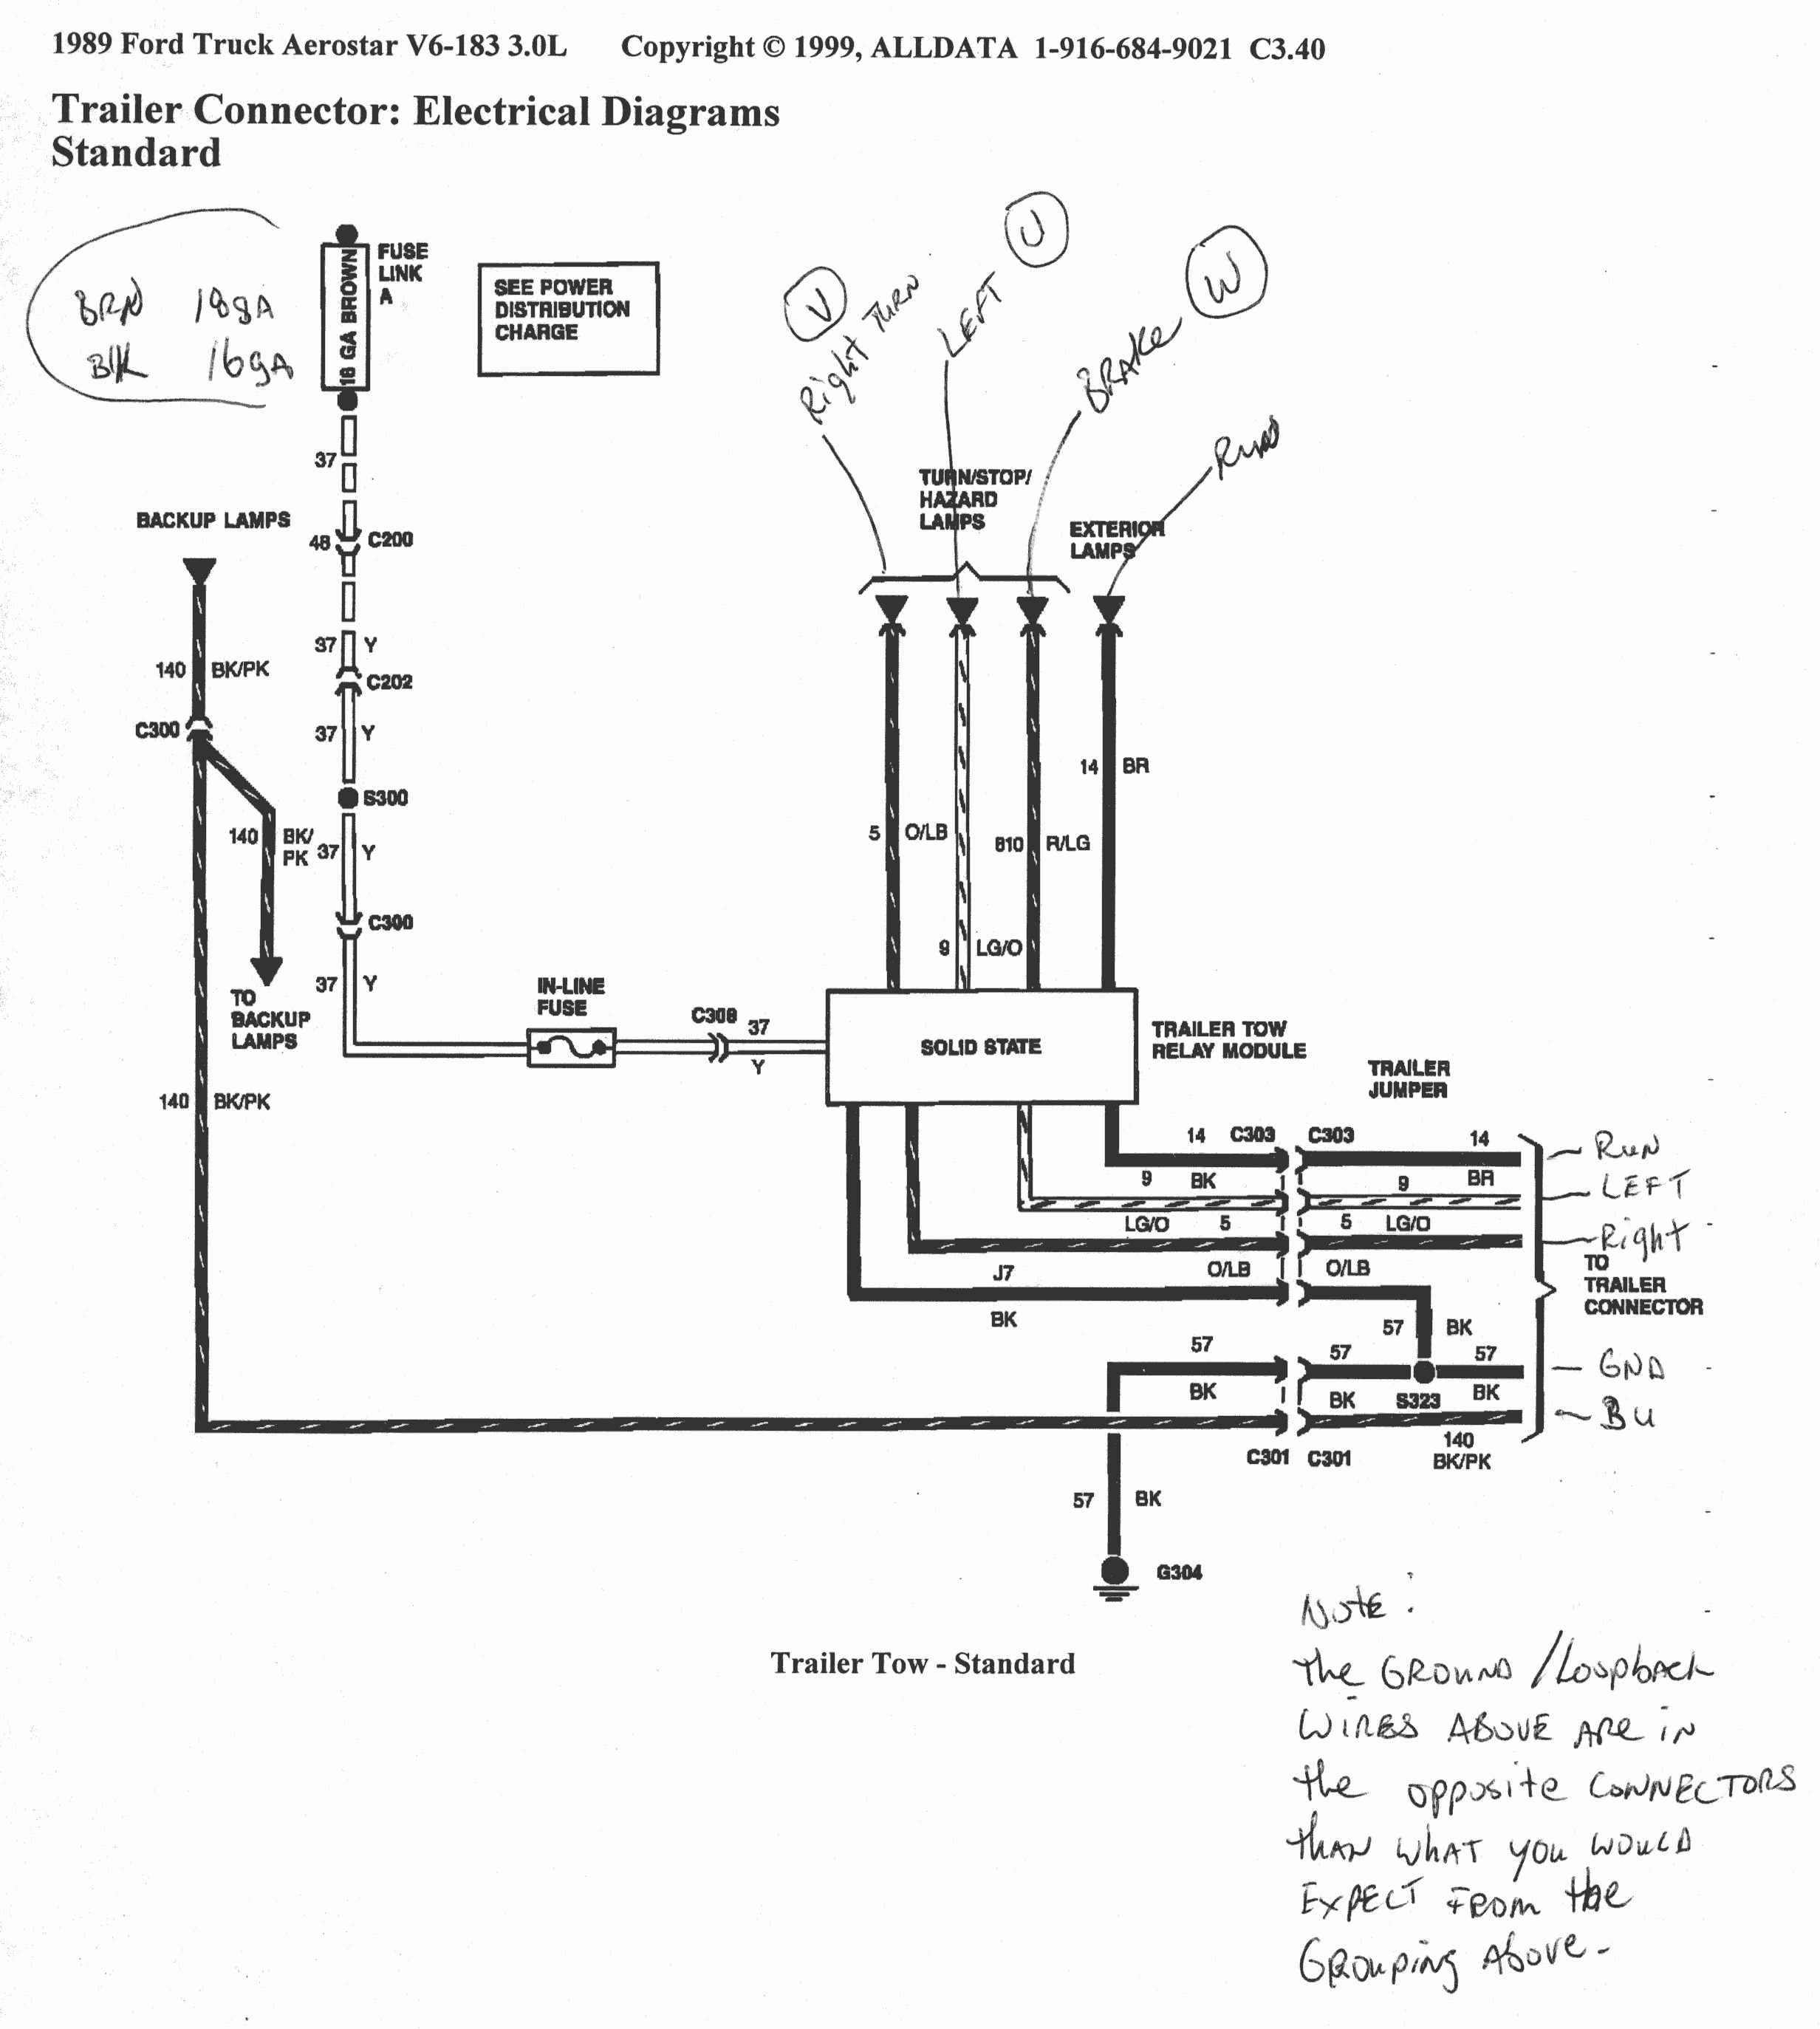 Download Image Hot Wiring Diagram ford Ranger Wiring Harness Diagram  Beautiful 1998 from 1998 ford f150 wiring diagram ...